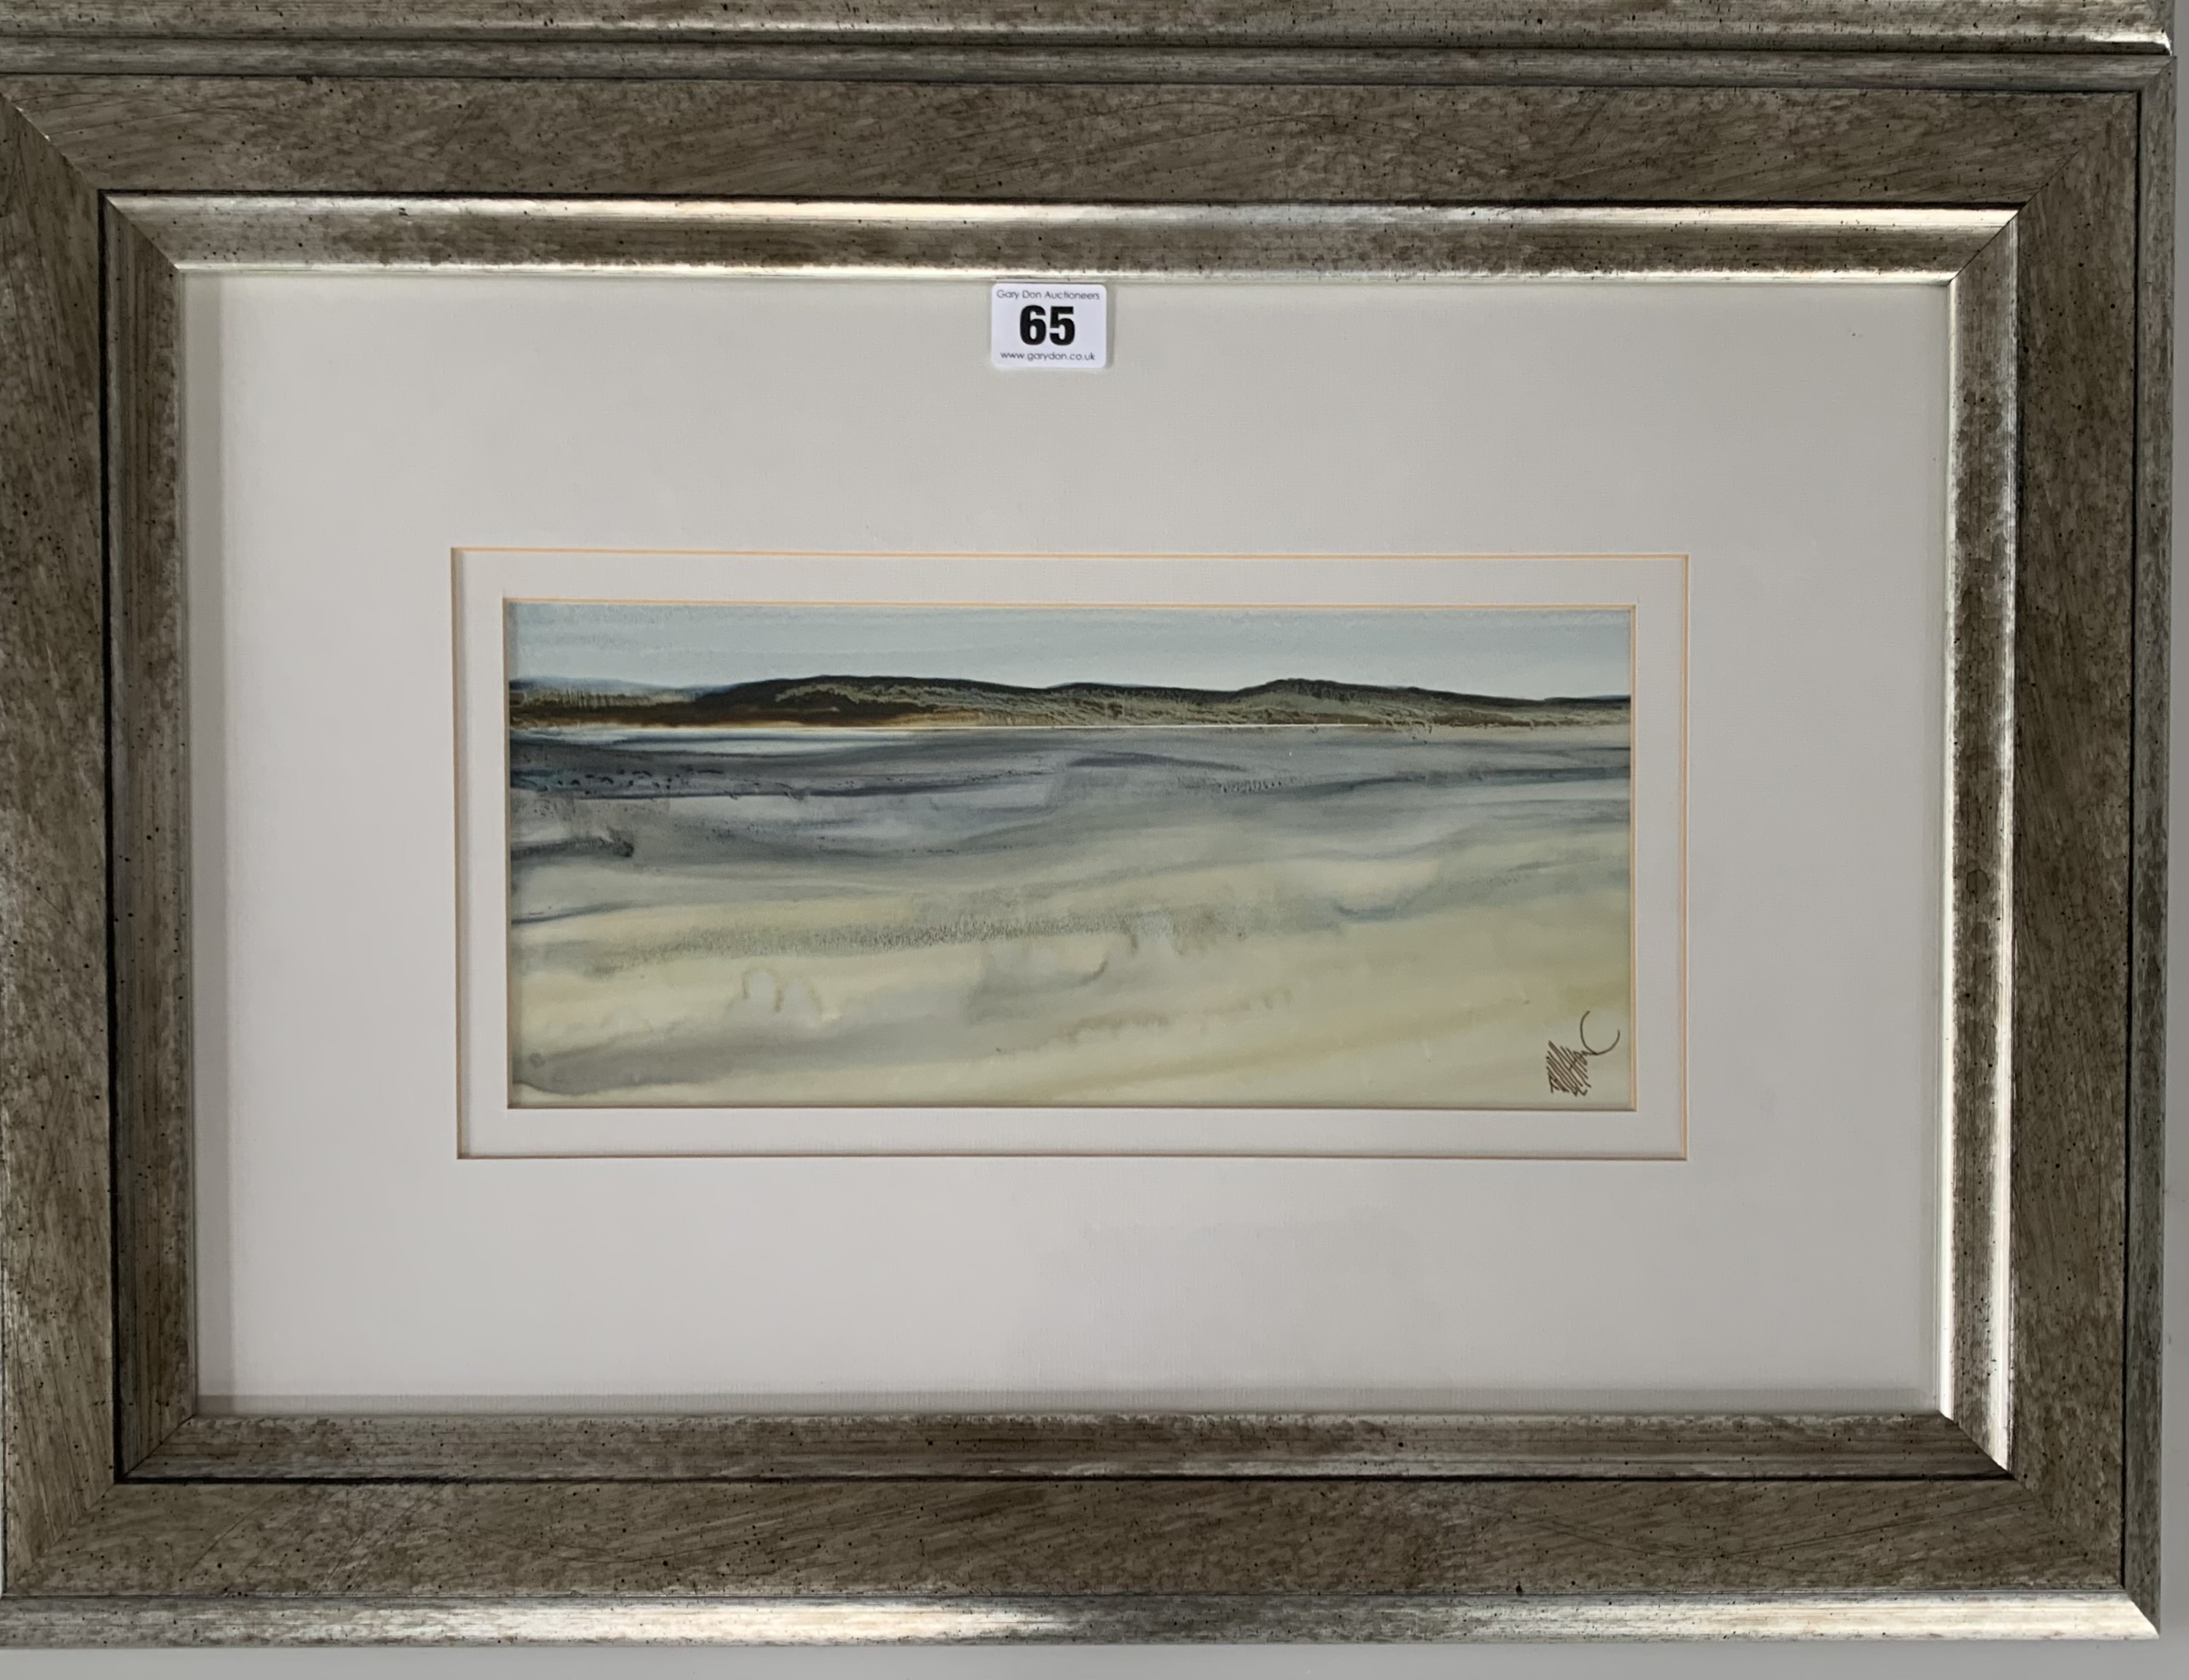 """Pair of watercolours """"Donegal Coast II"""" and """"Donegal Coast III"""" by Tony Holahan. Images 12"""" x 5. - Image 2 of 6"""